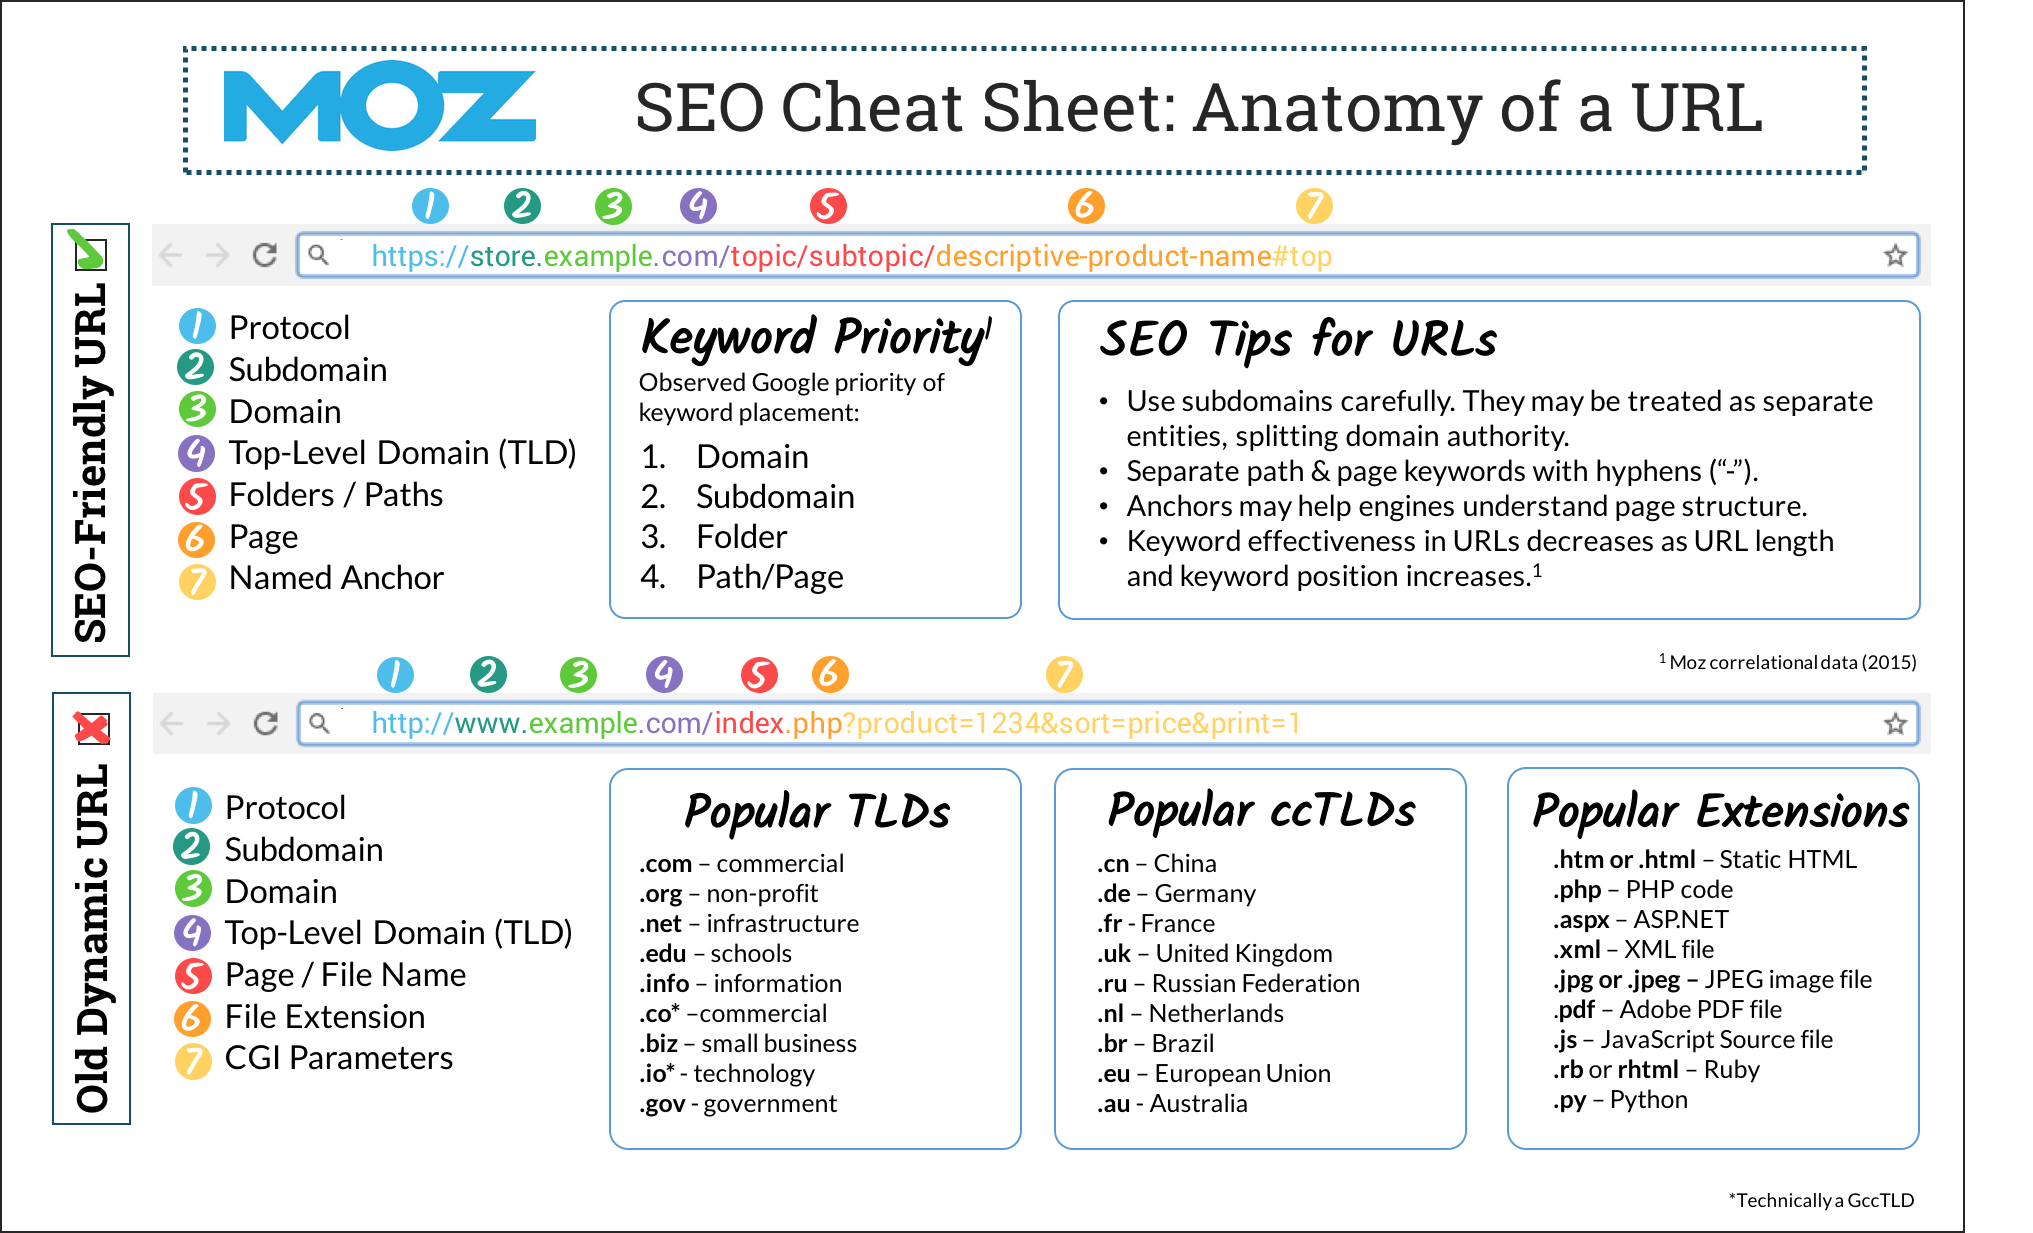 Anatomy of a URL Cheat Sheet